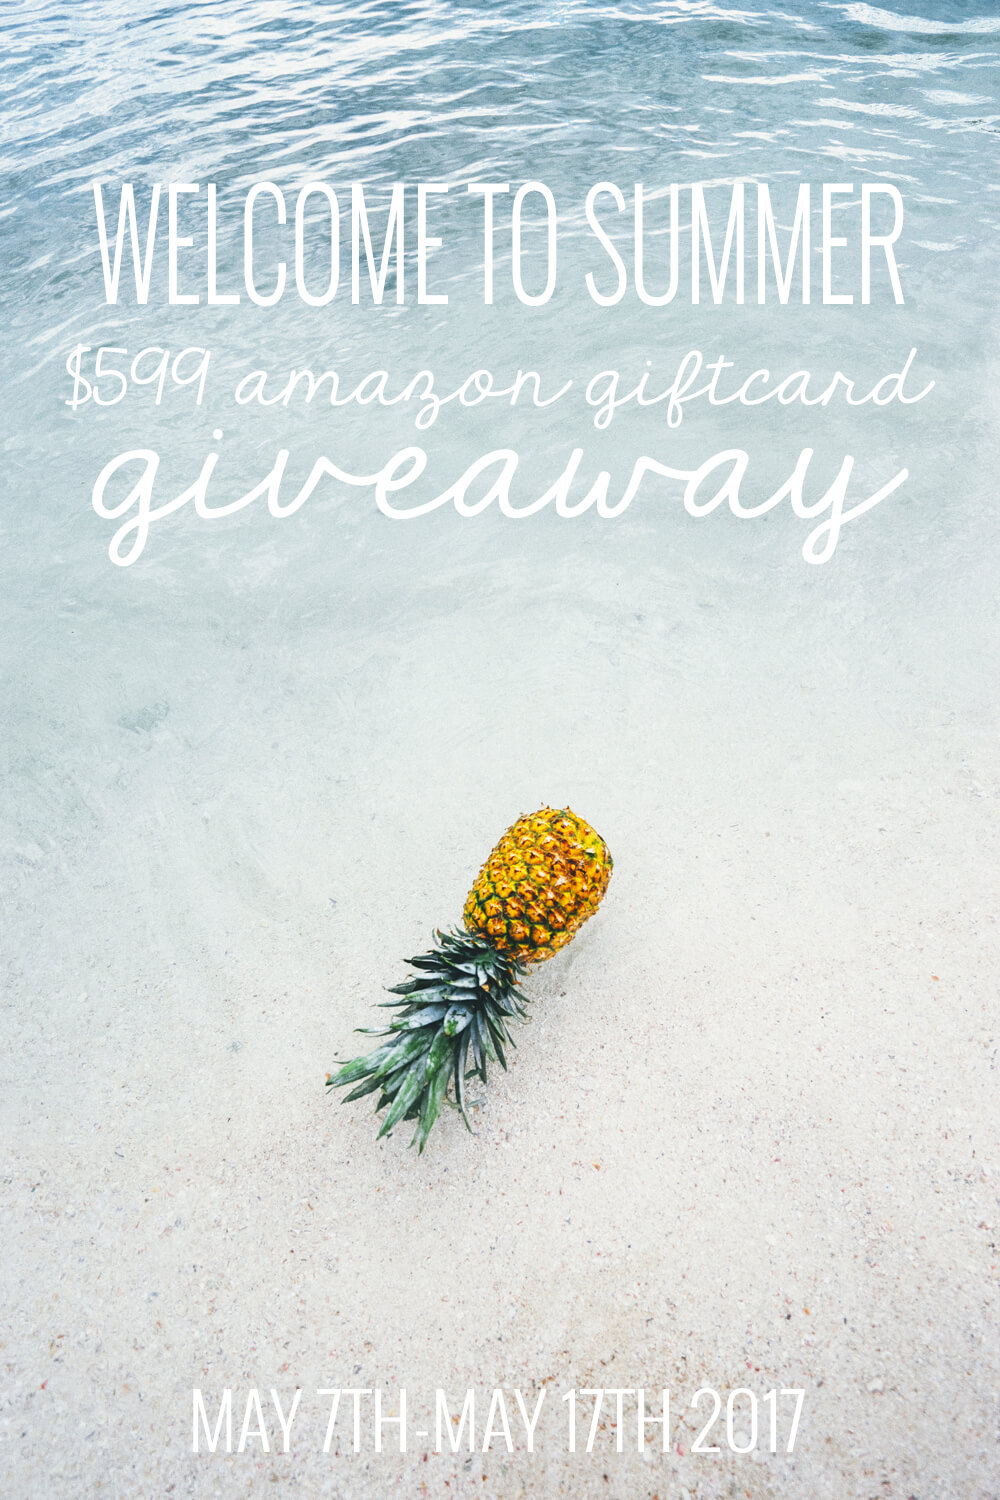 $599 Amazon Gift Card Giveaway to kick off summer